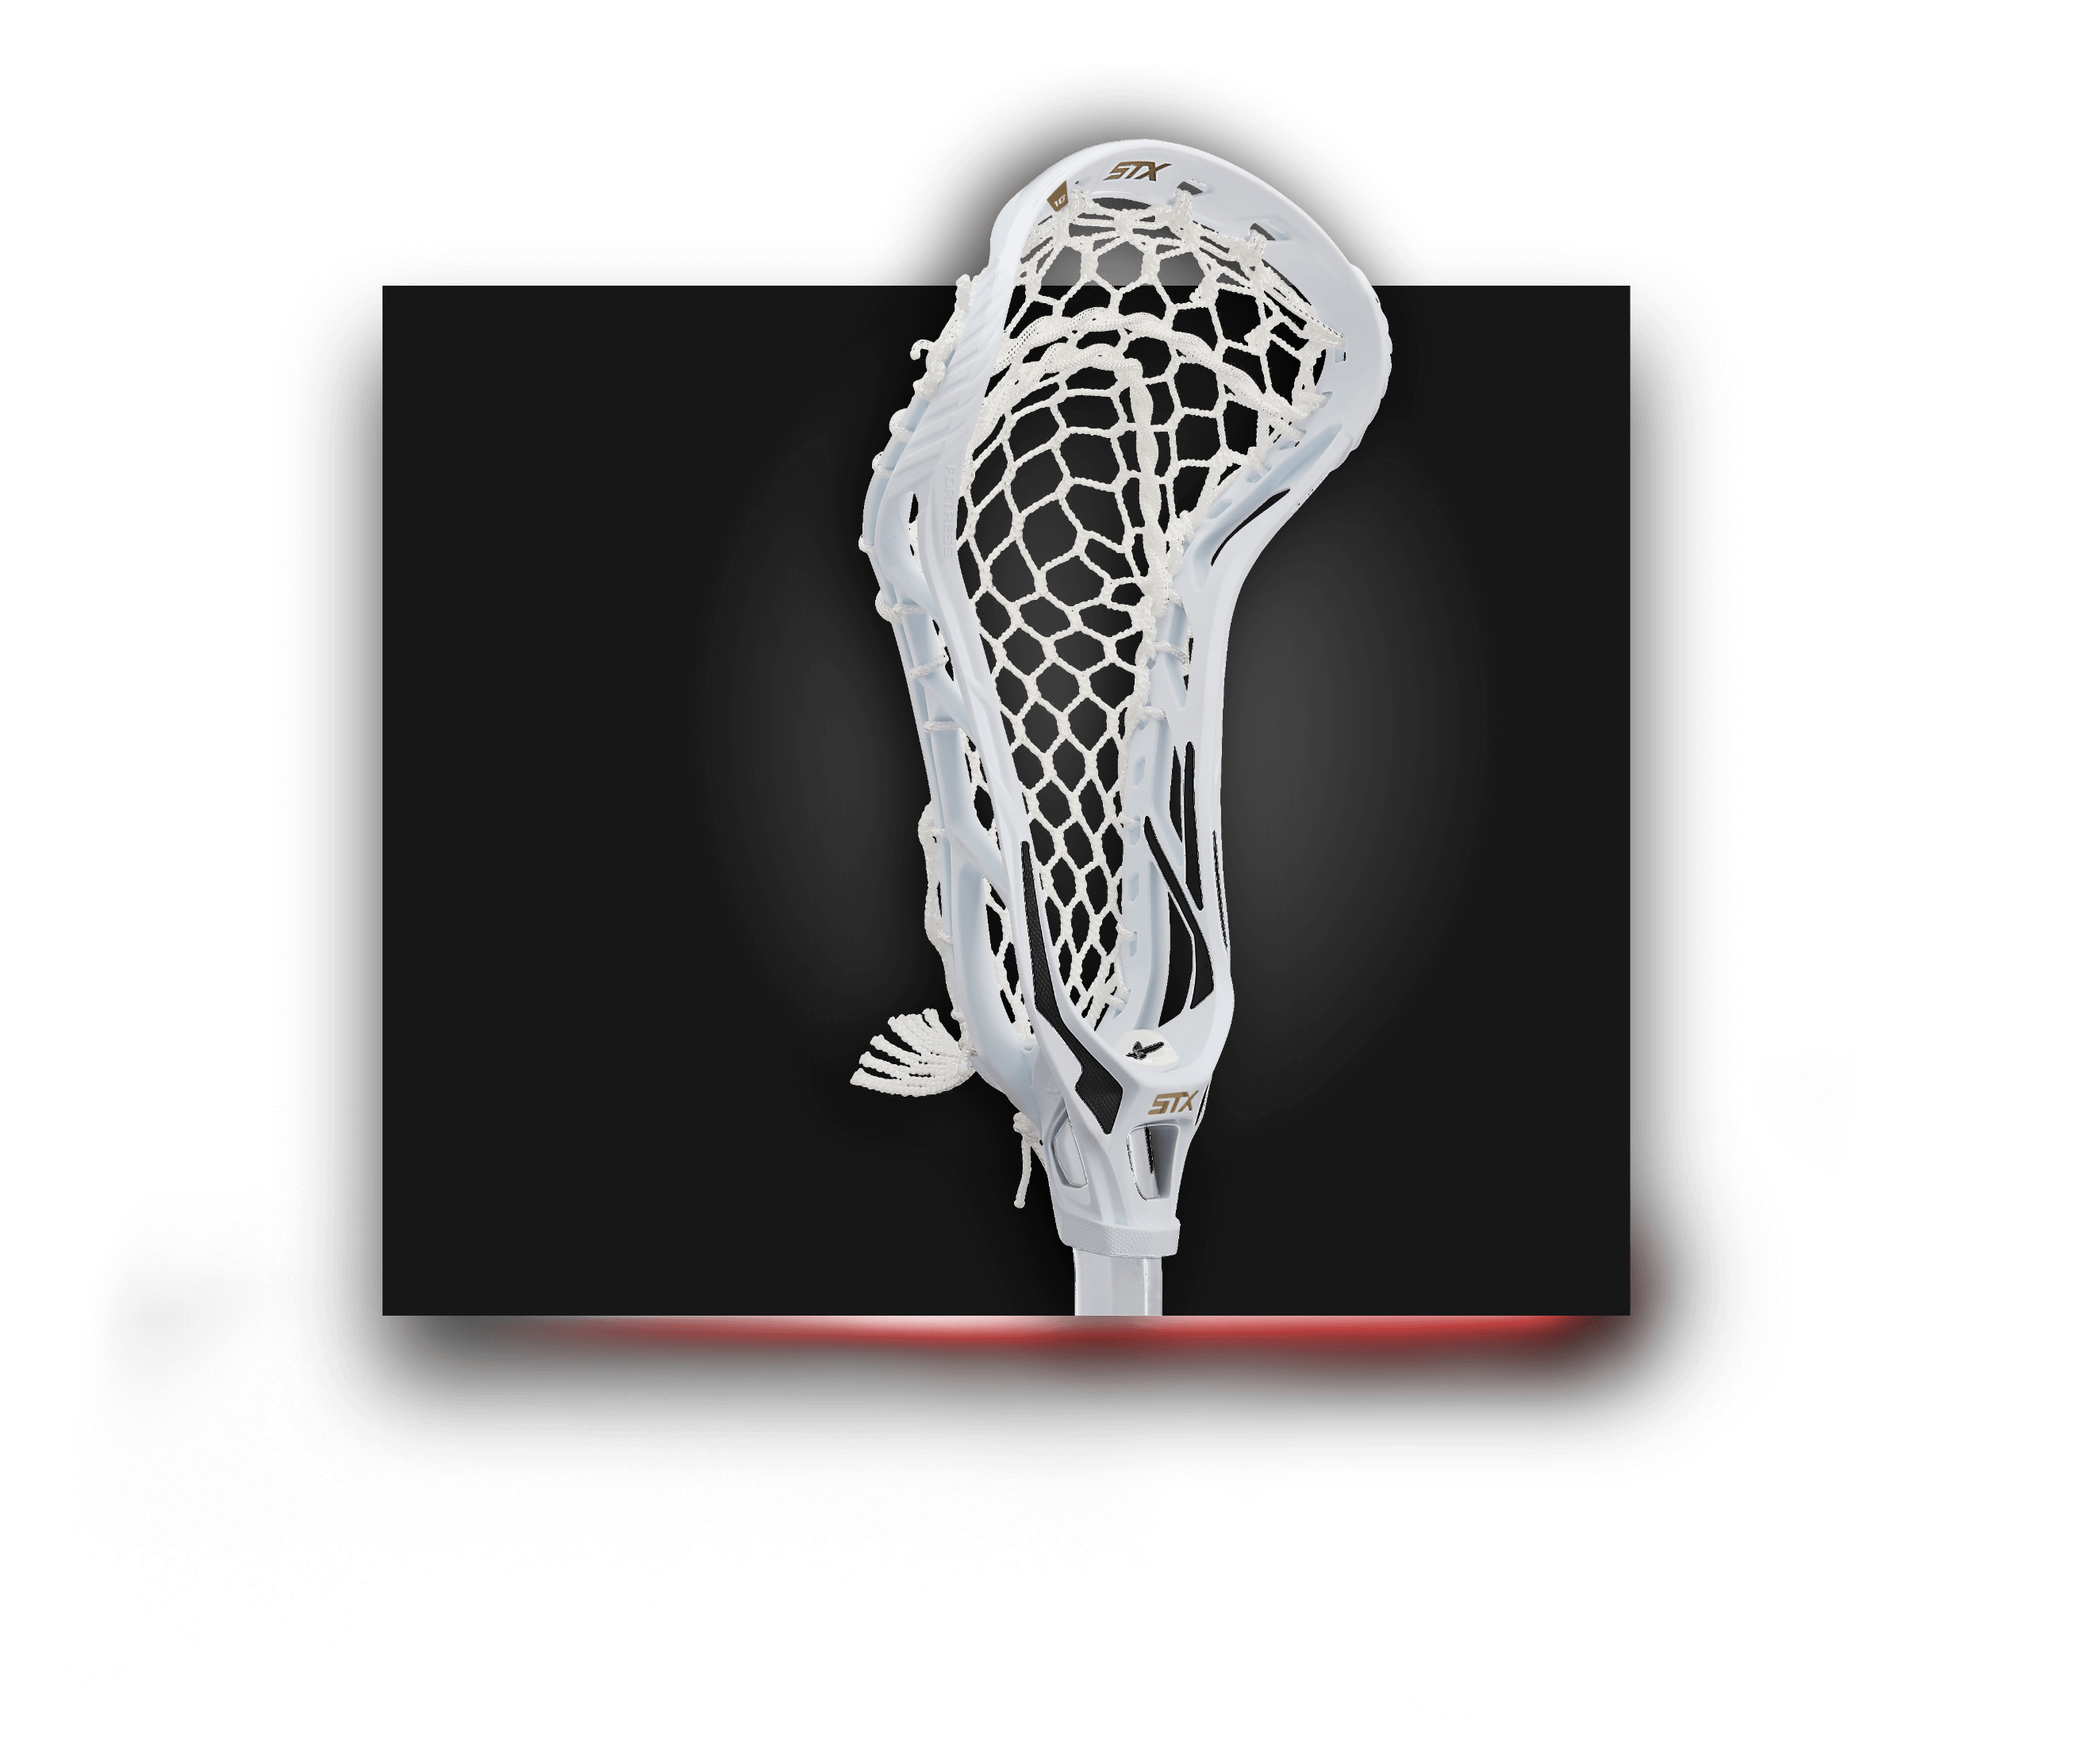 STX Fortress 700 Head